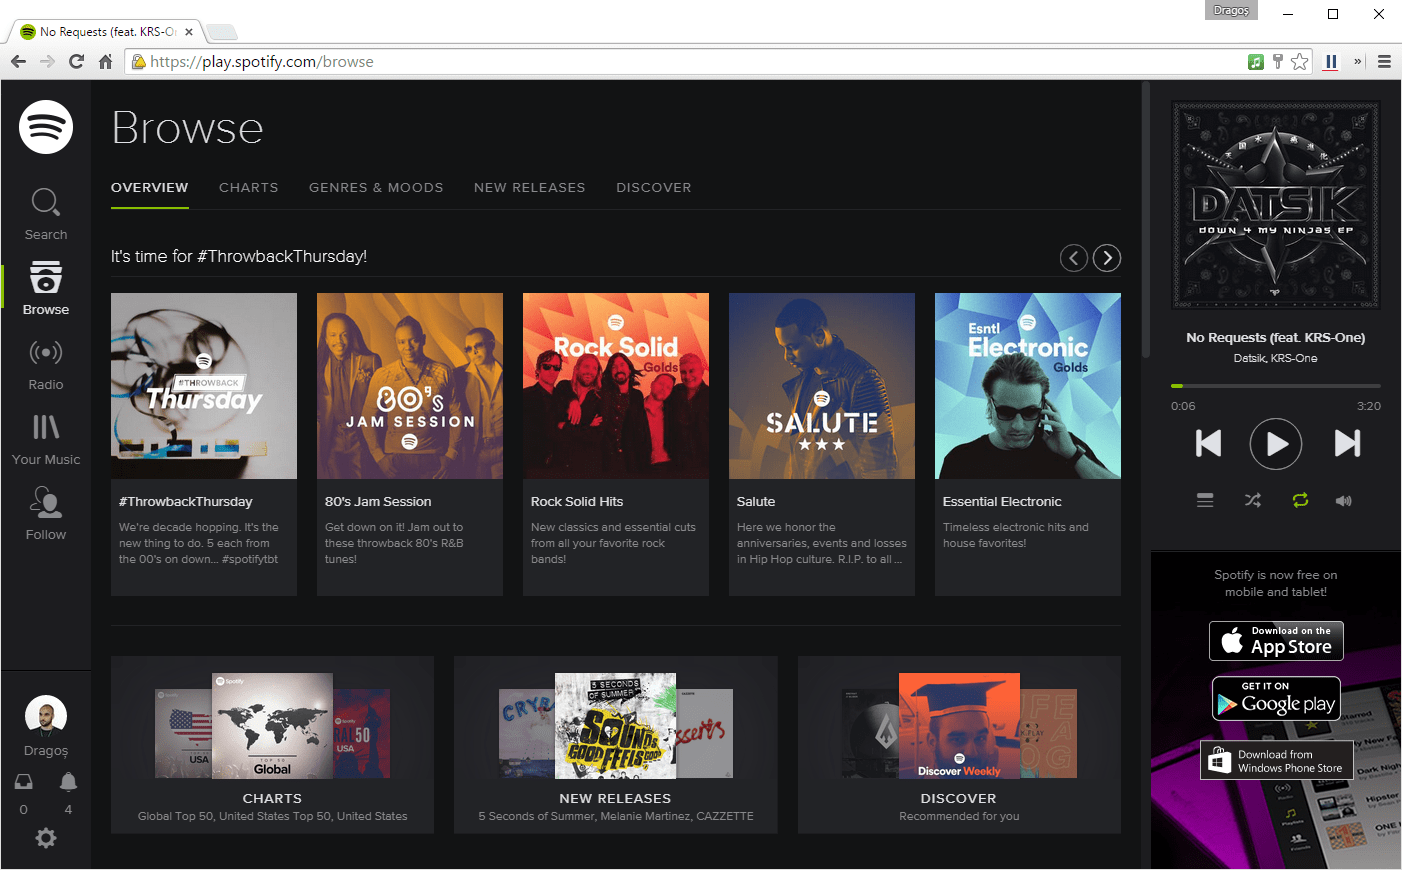 spotify-in-romania-web-player